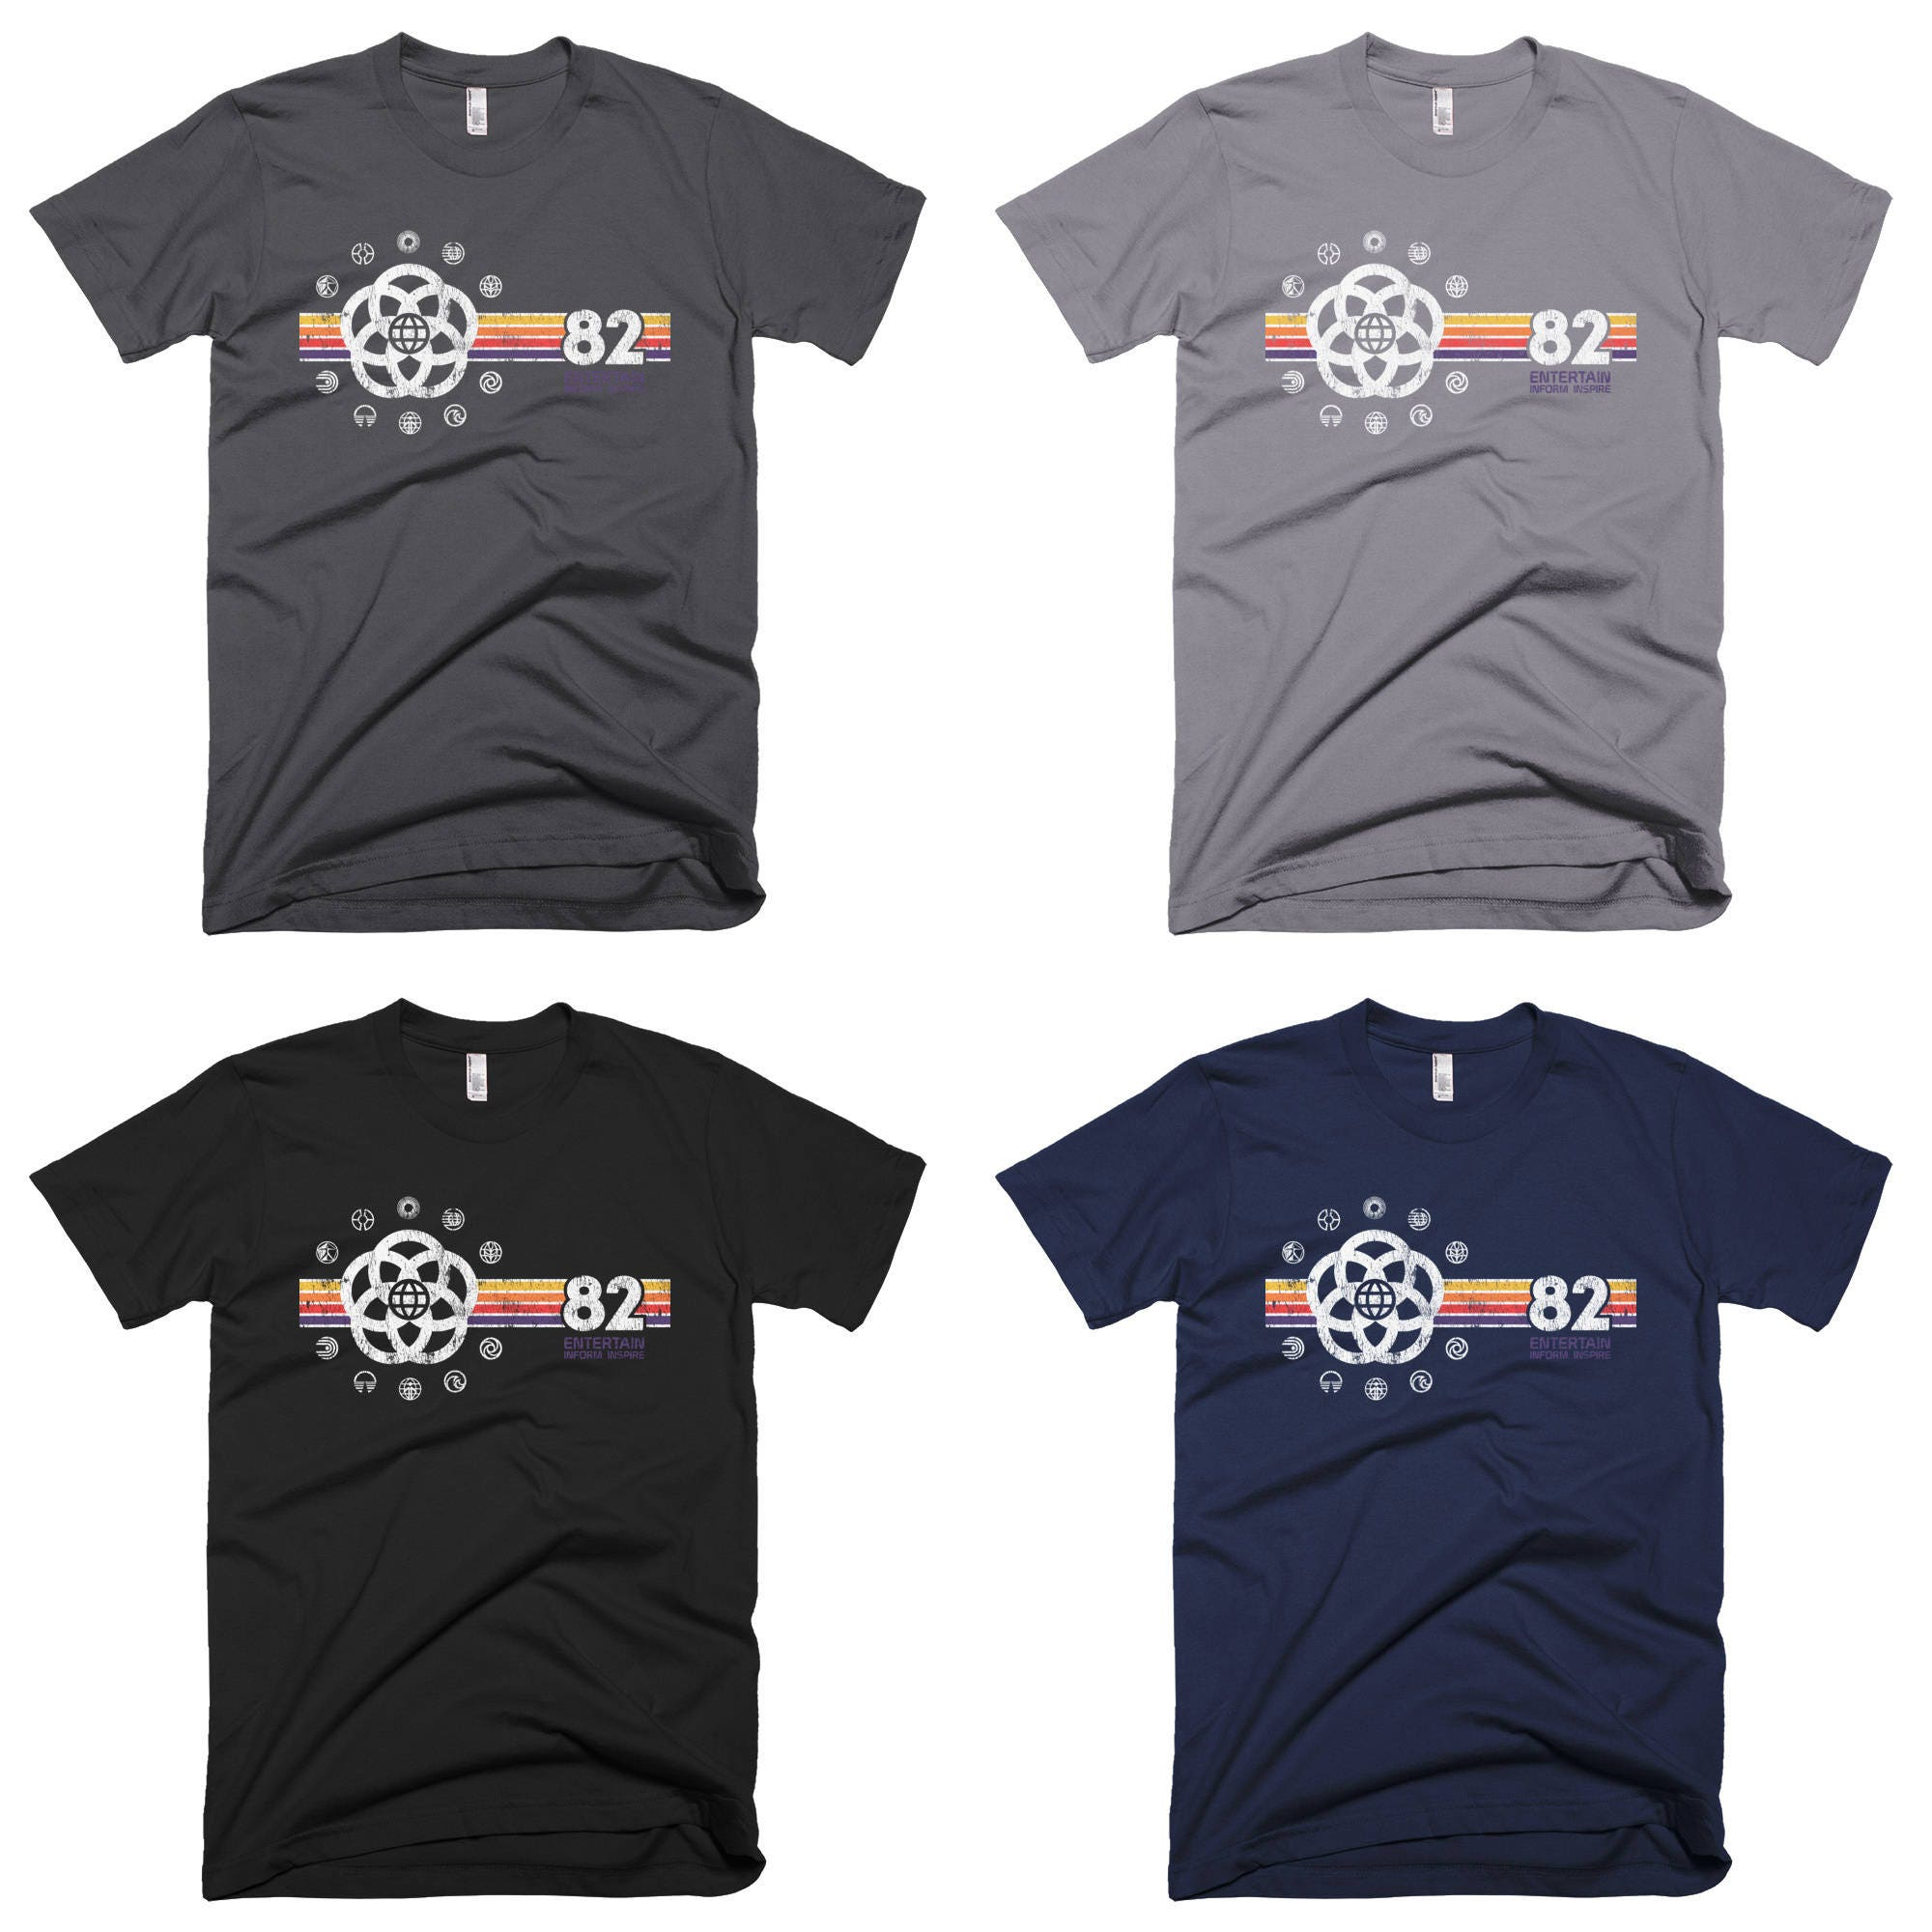 EPCOT Shirt EPCOT Center T-Shirt with Pavilion Logos and a